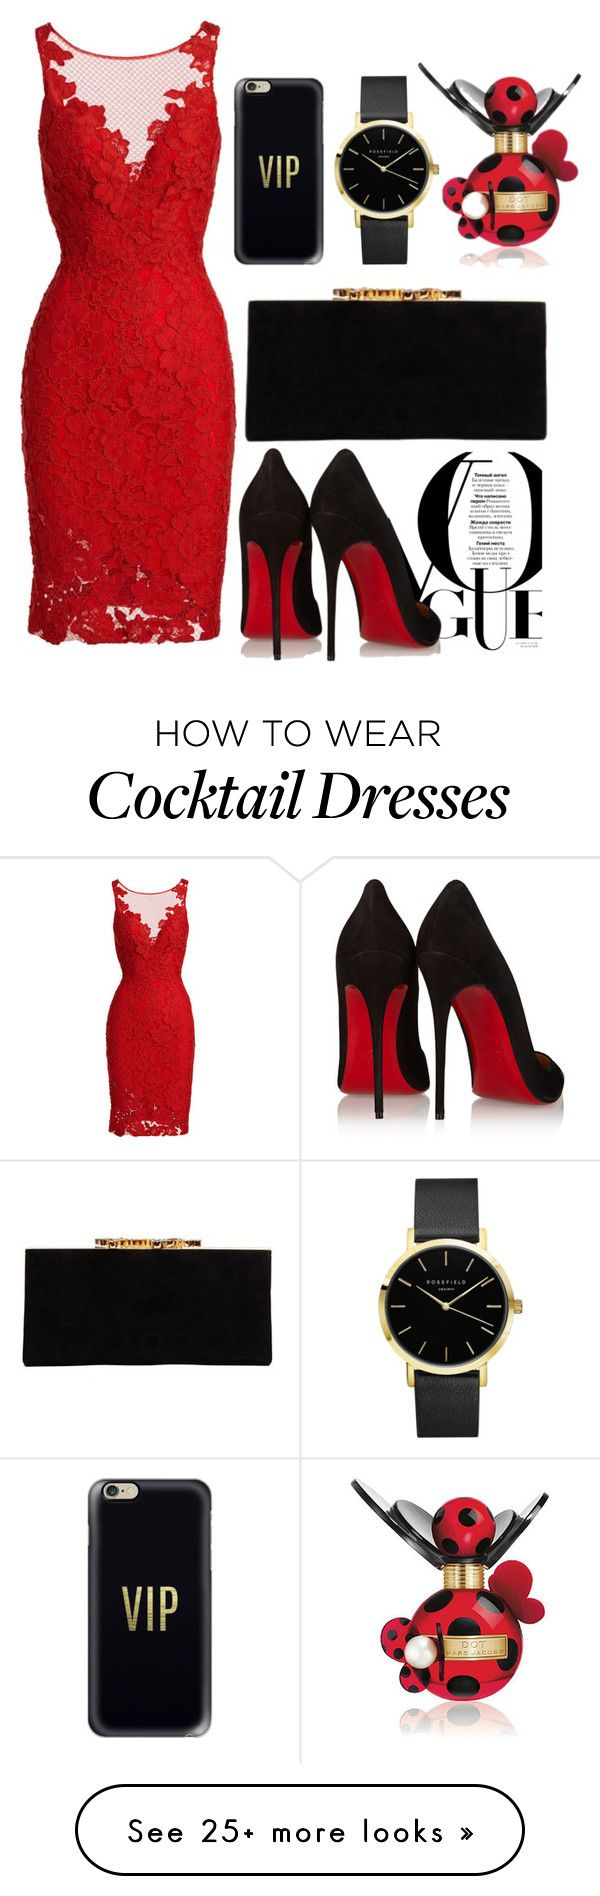 VIP by denaexr on Polyvore featuring ML Monique Lhuillier, Marc Jacobs, Christian Louboutin, Jimmy Choo and Casetify